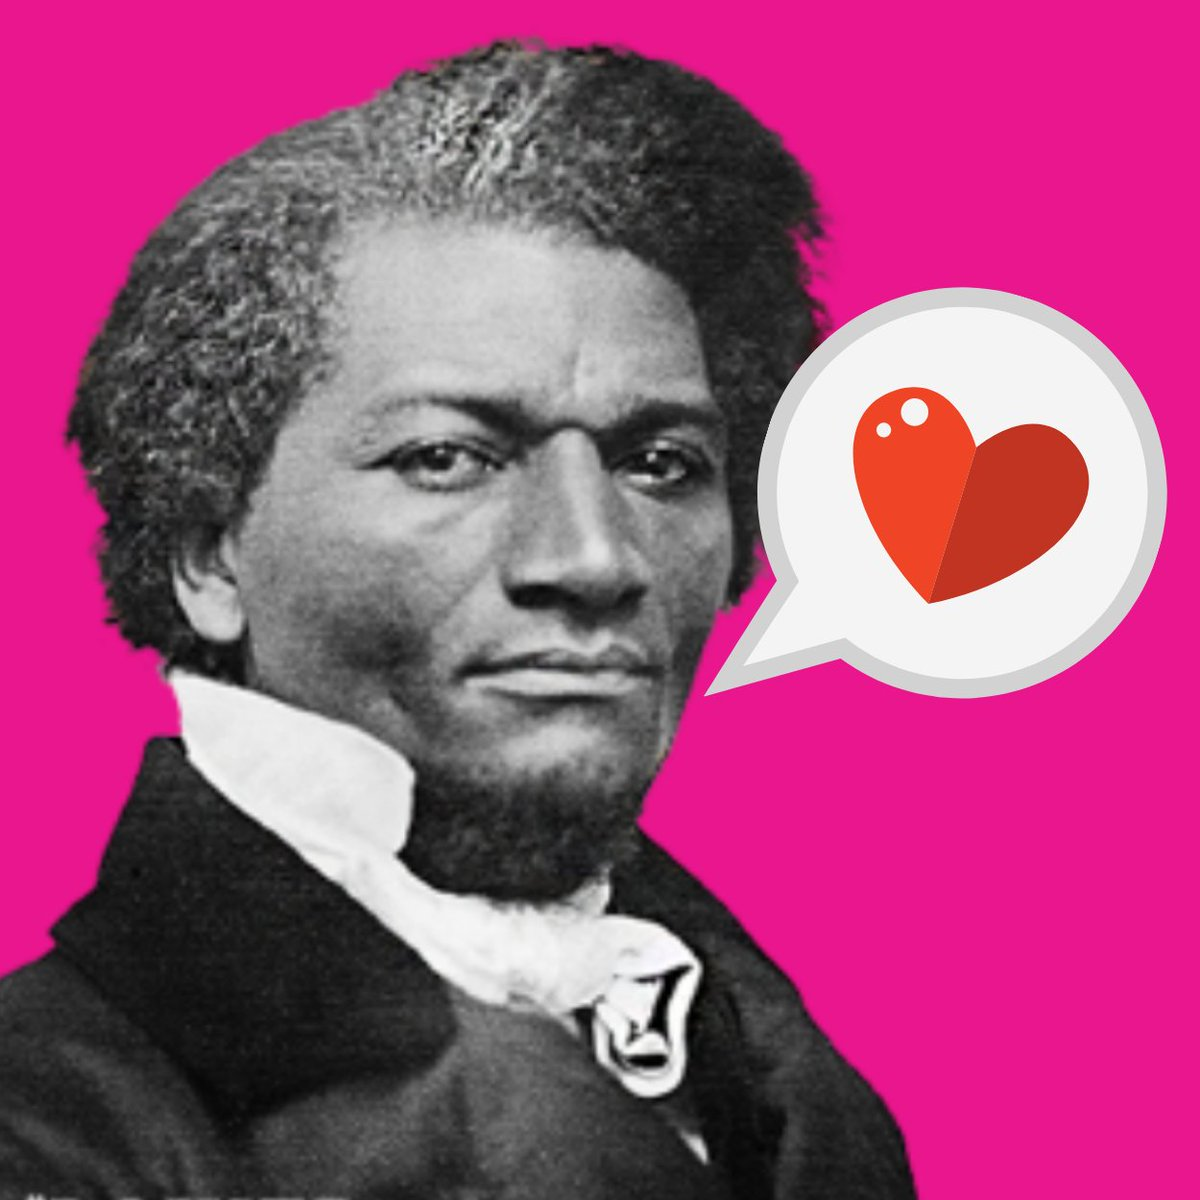 During #DouglassWeek, we've been inspired by the women in Douglass's life on both sides of the Atlantic. What better way to end this remarkable week than with this group of strong women: @EmmaDabiri @hazechu @EbunJoseph1 @DouglassFamily @MaryRobinsonCtr @suzannelynch1